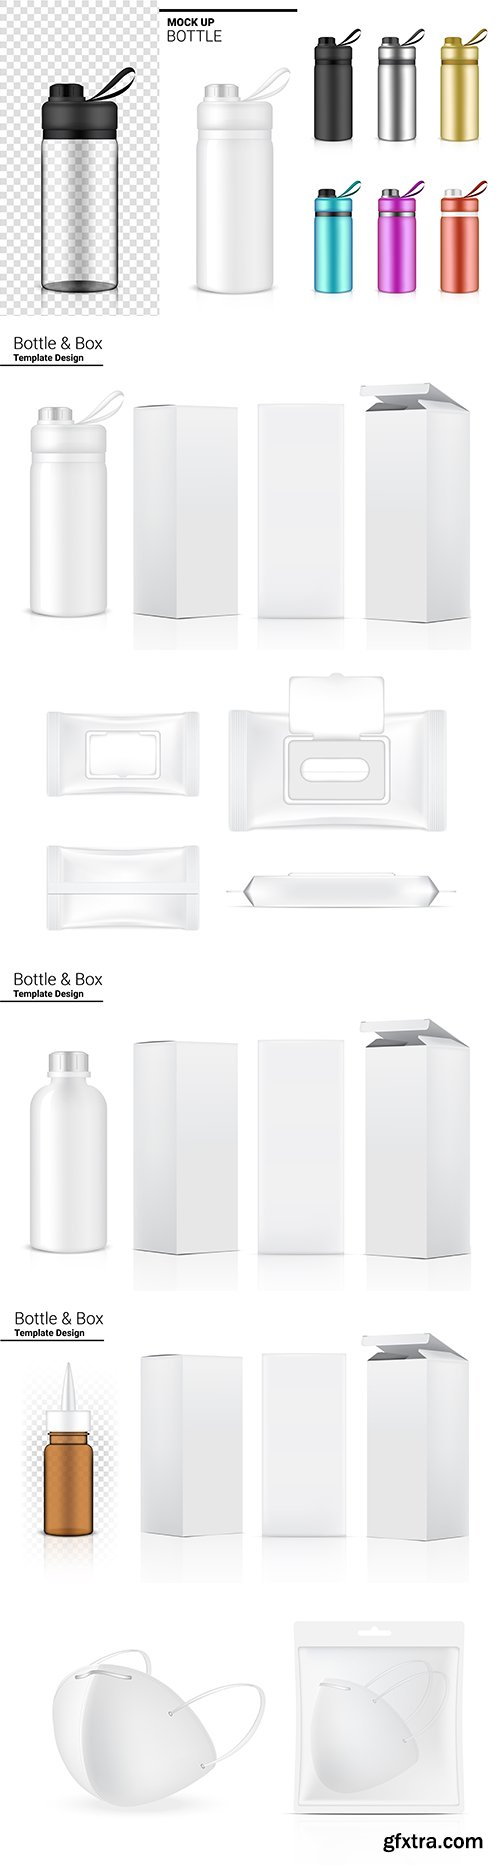 Bottle and packaging 3d realistic template design